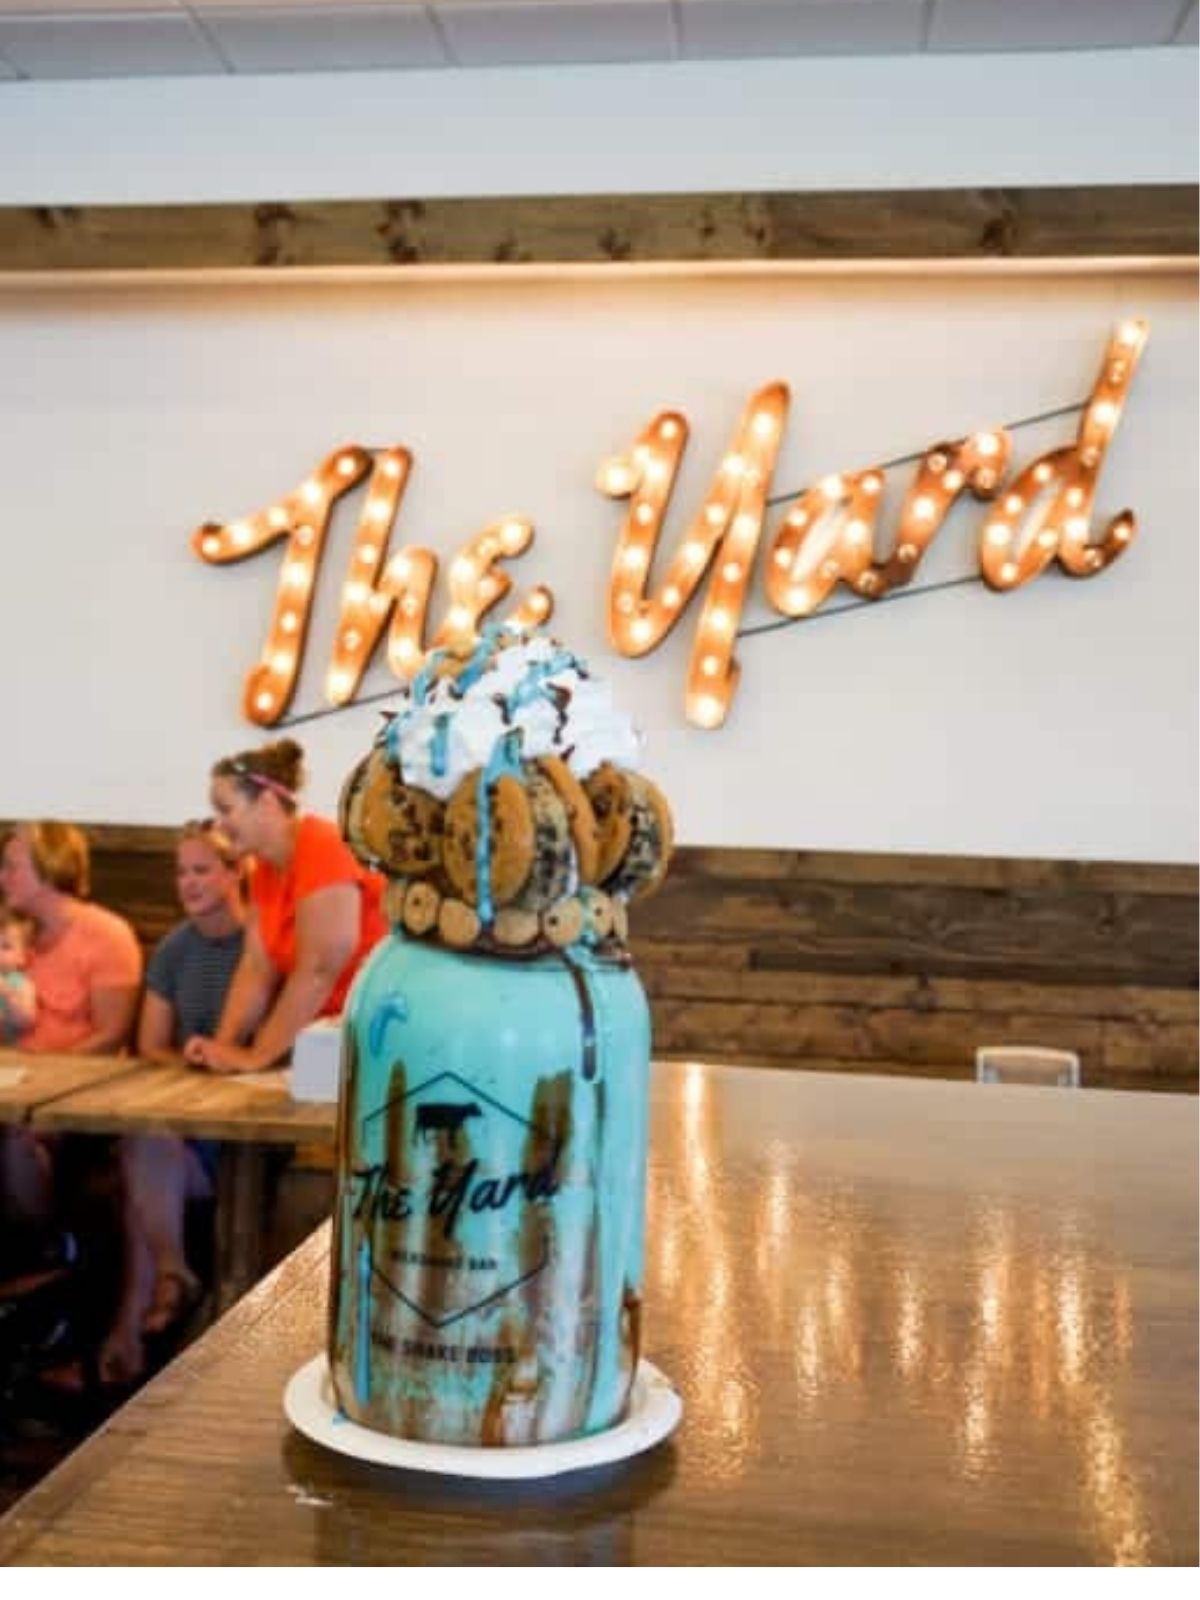 """the background is a sign that says """"the yard"""" in light up letters. the foreground is a blue cookie monster milkshake"""